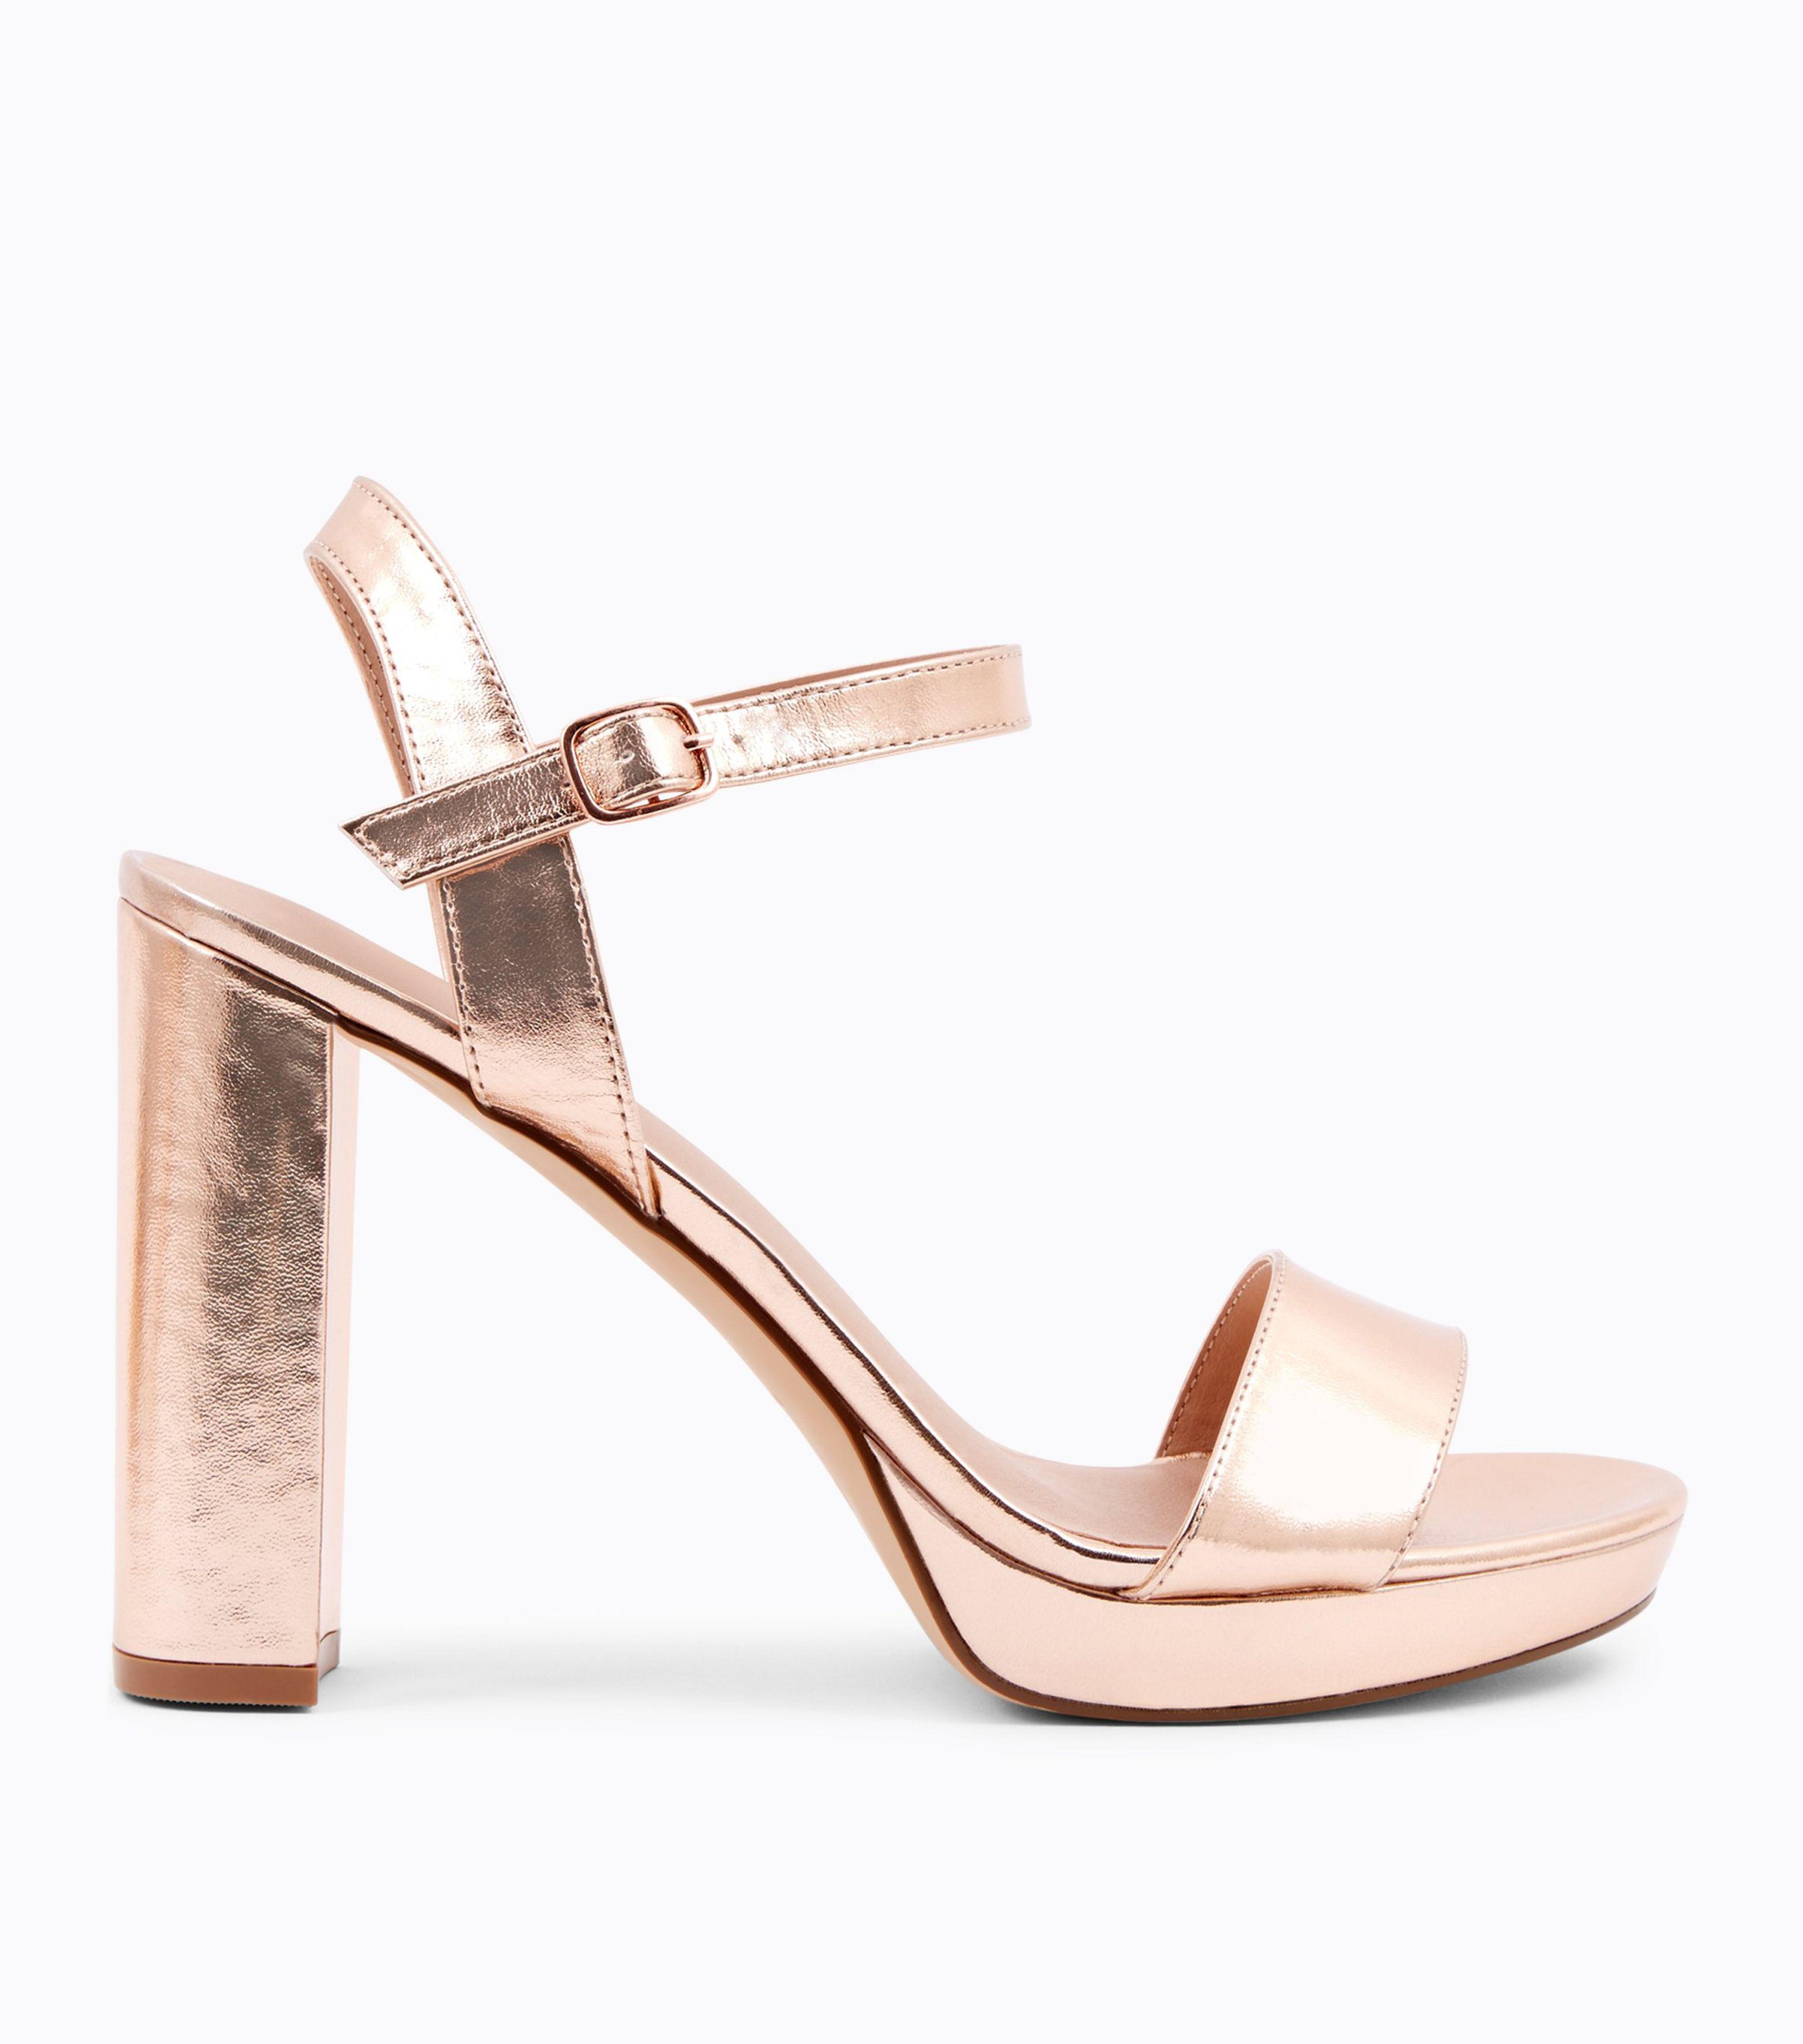 07c17ed4a1a9 New Look Rose Gold Metallic Block Heel Platform Sandals in Pink - Lyst